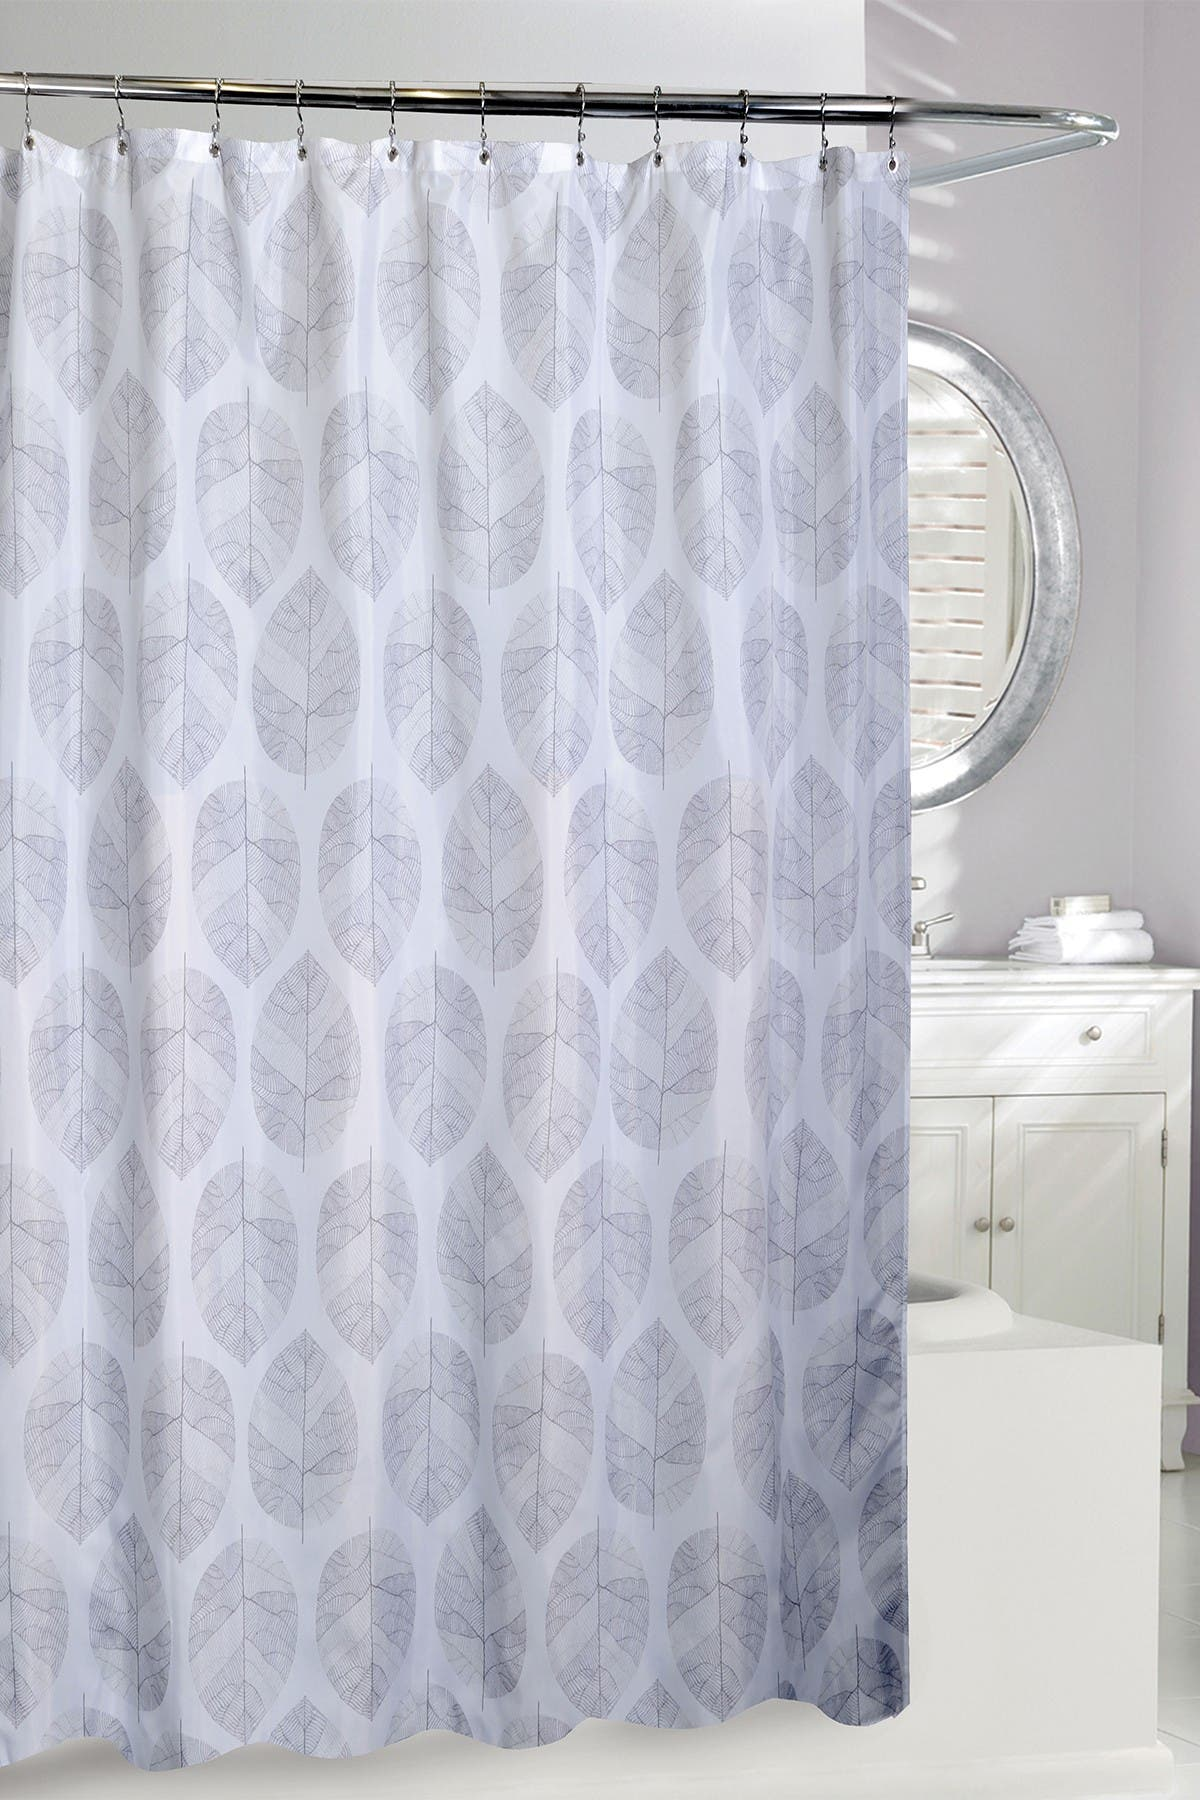 Image of Moda At Home White/Grey A La Mode Shower Curtain